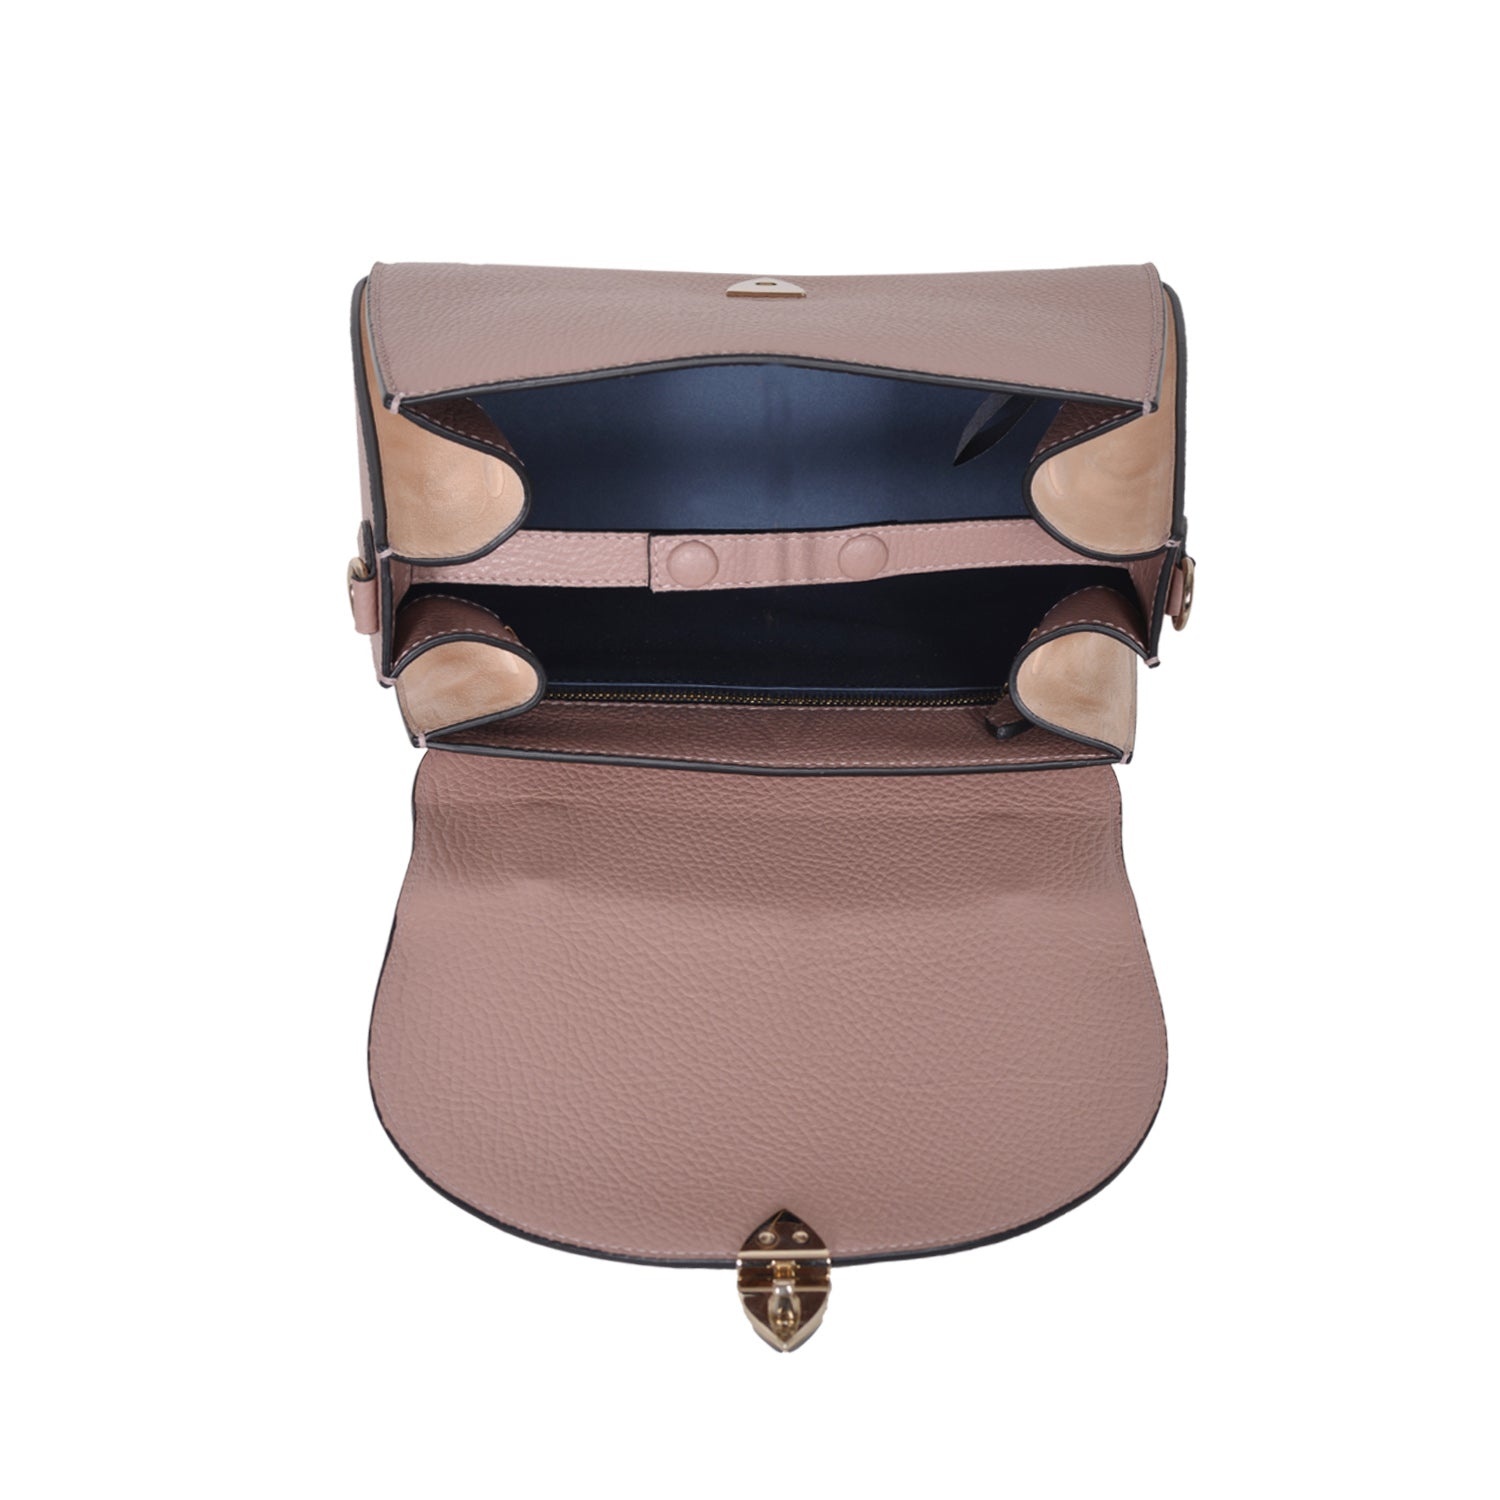 F.E.V PINK GRAIN LEATHER CORTINA TOP HANDLE BAG